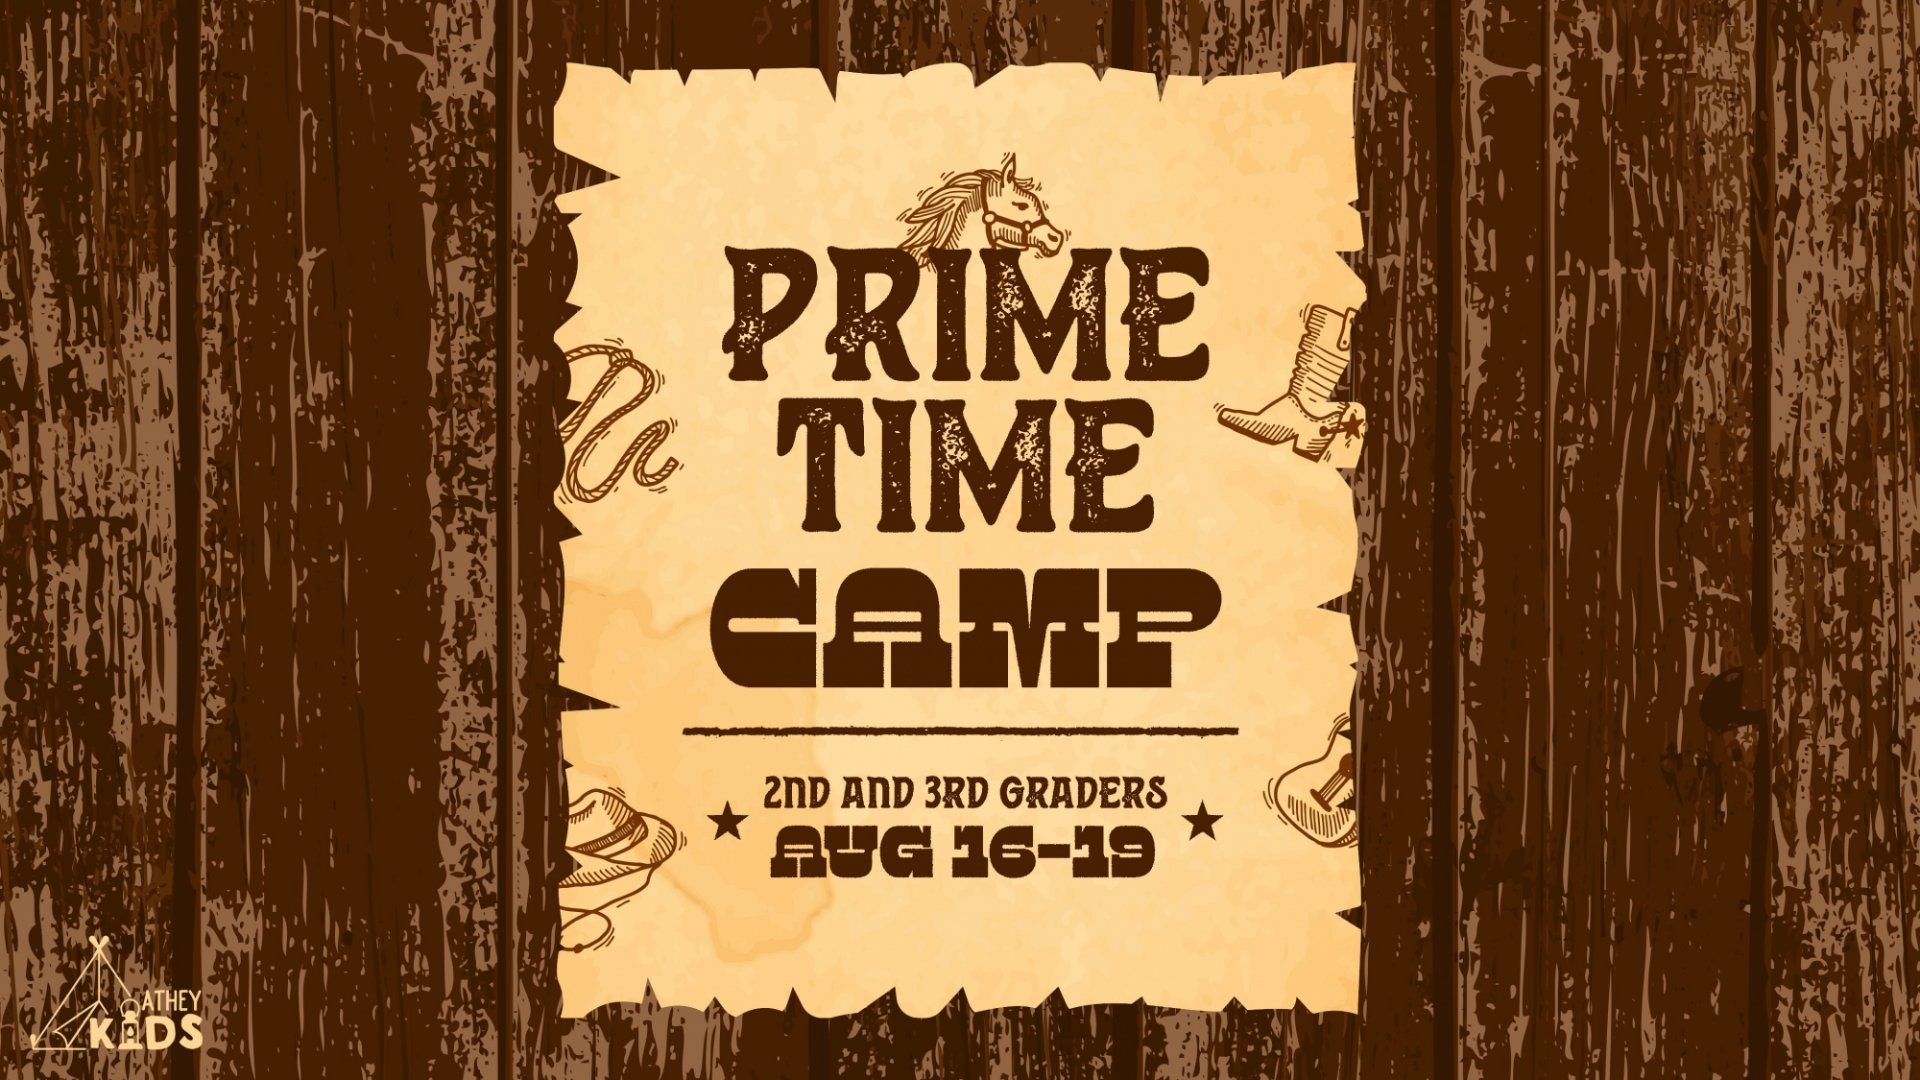 Poster for Prime Time Camp